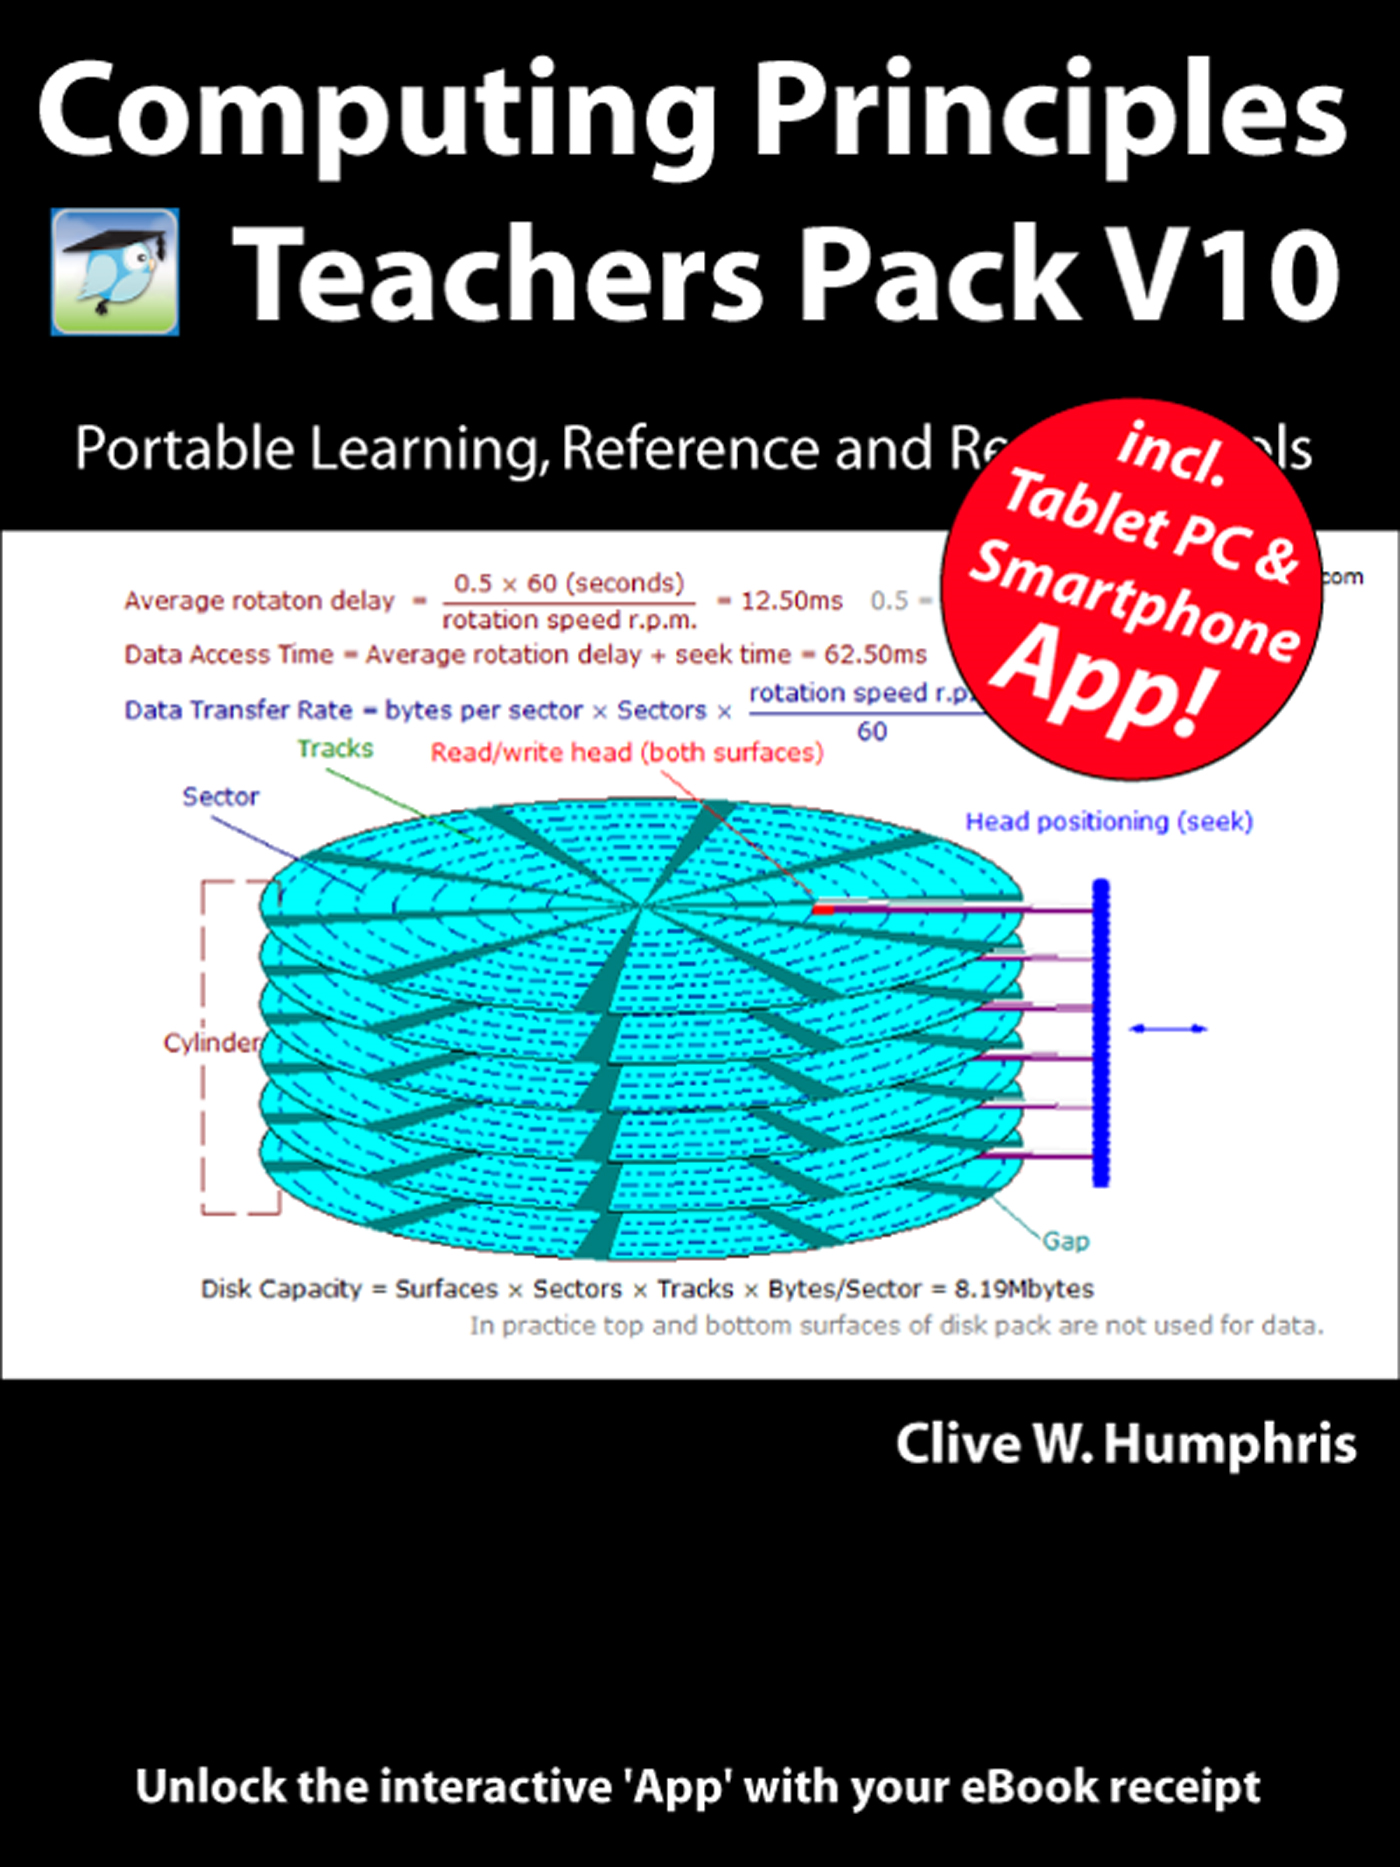 Computing Principles Teachers Pack V10